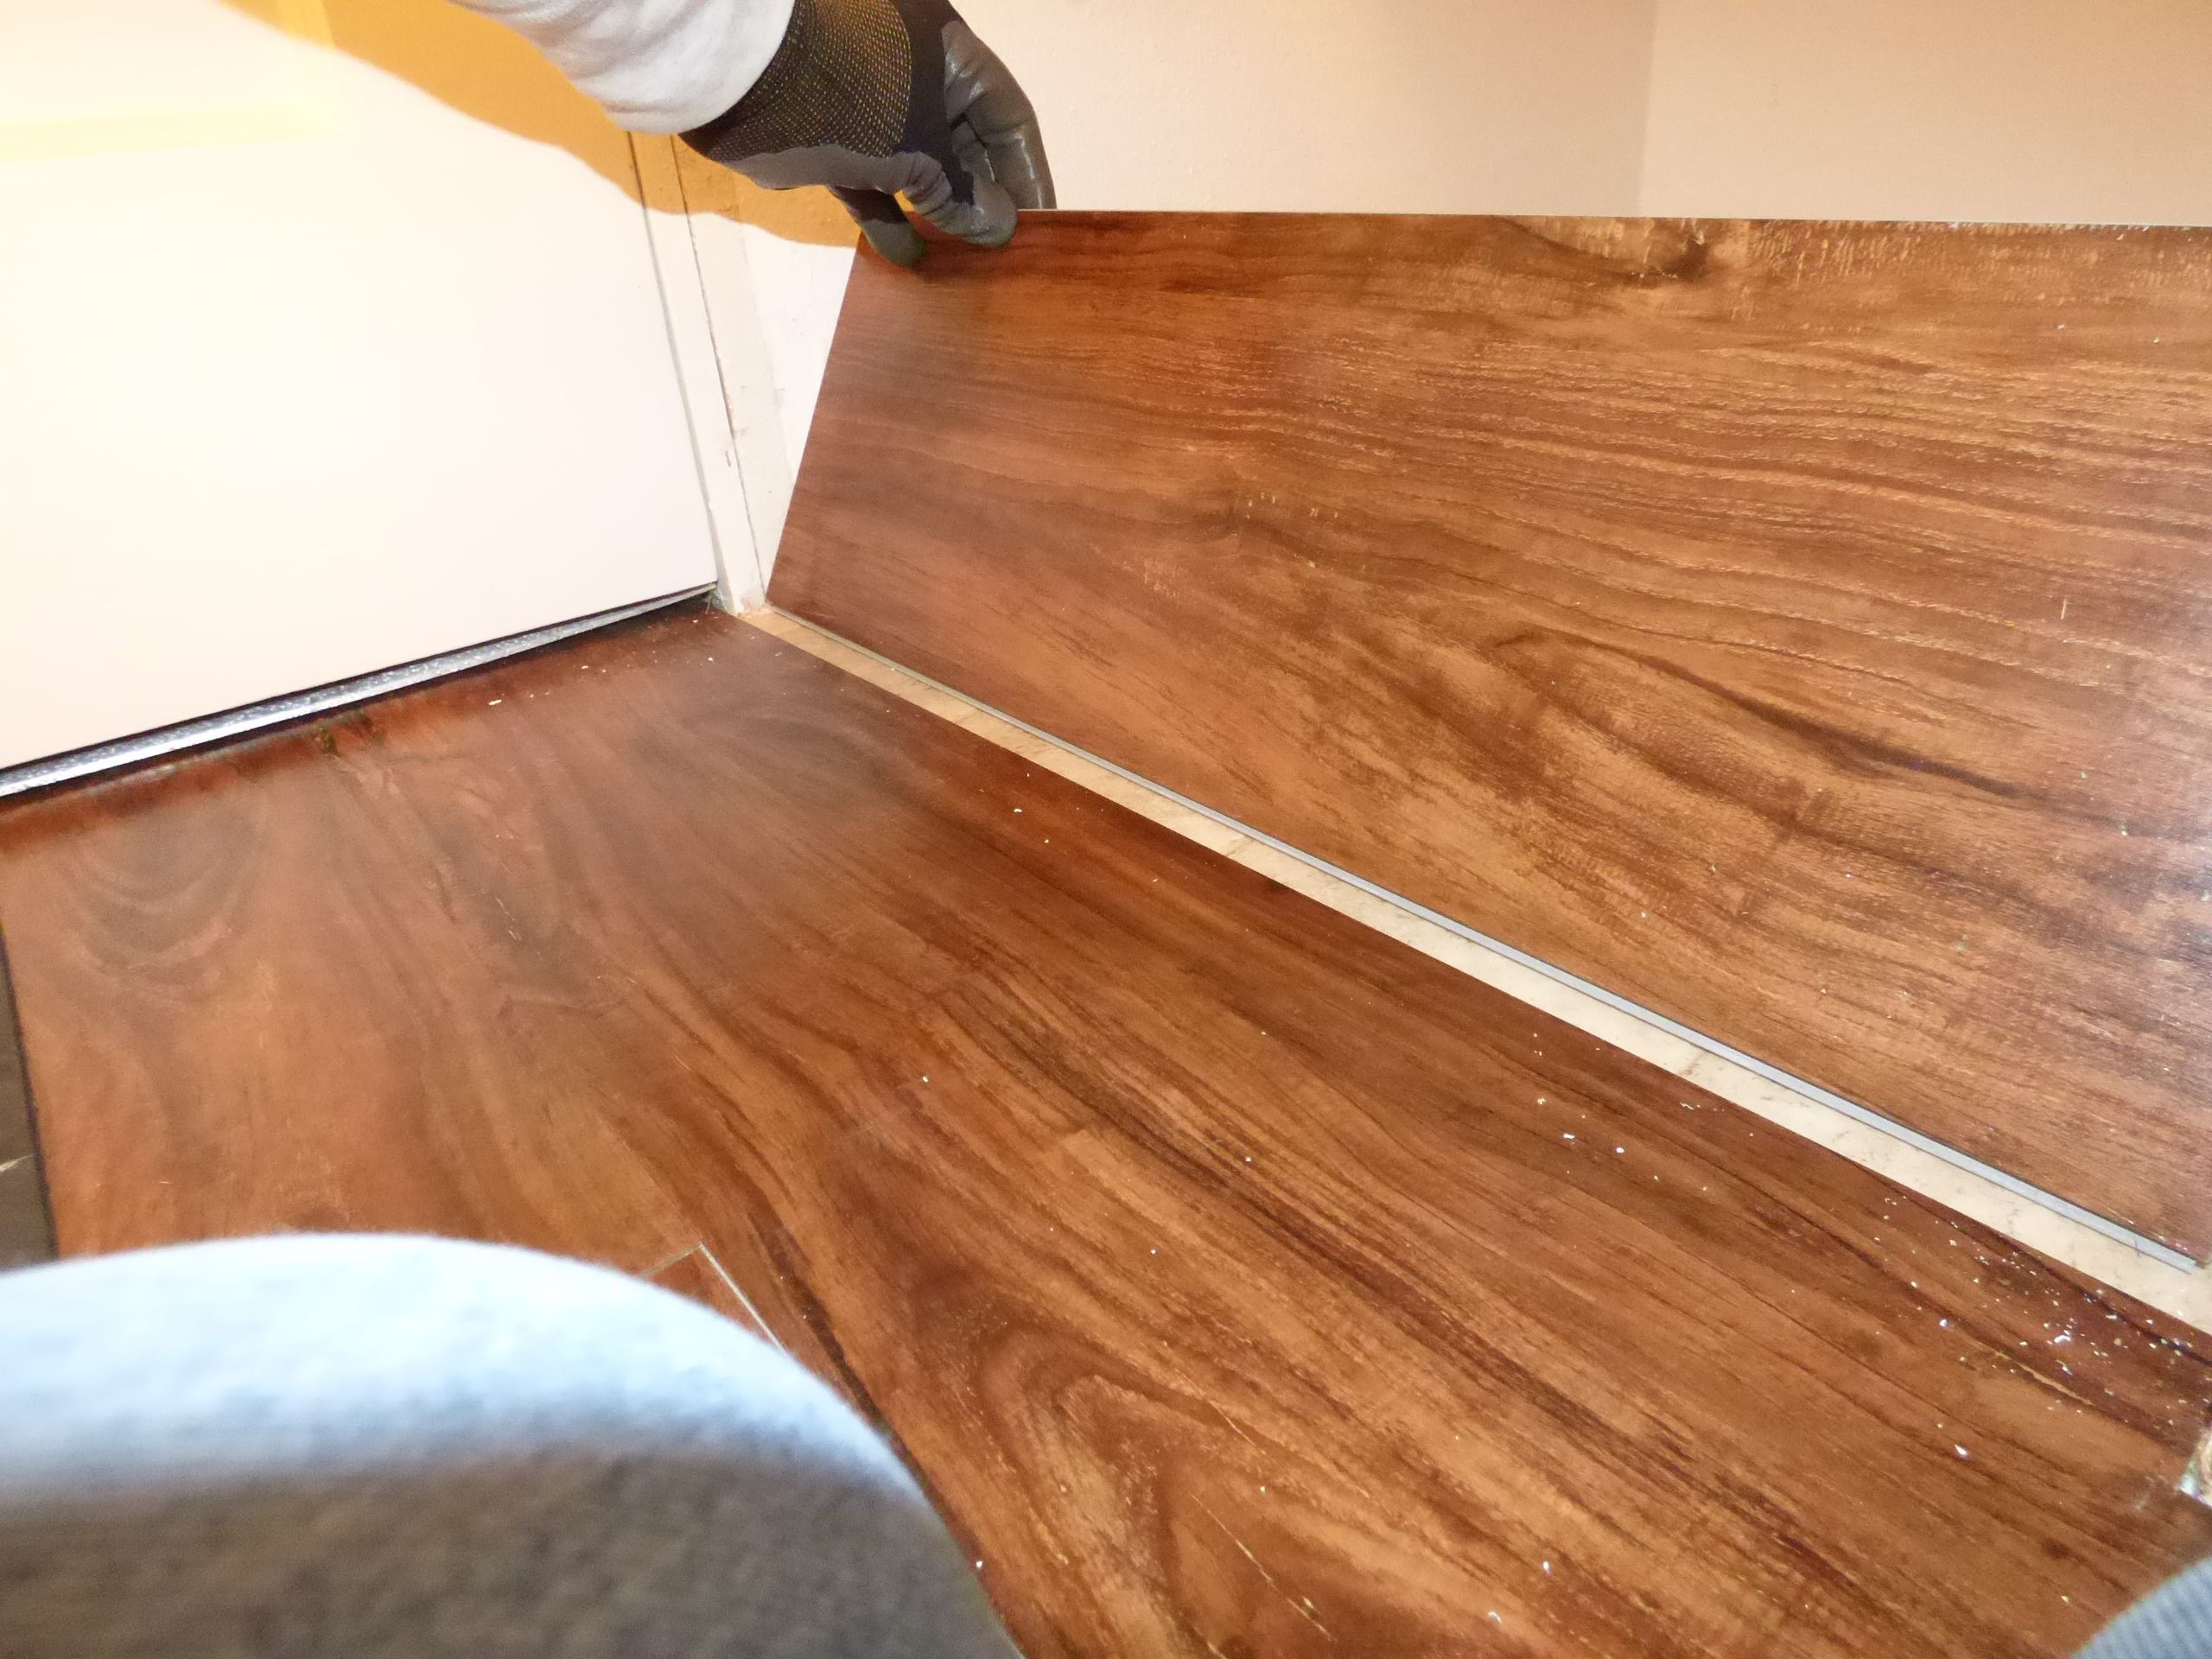 How to Install Hardwood Floors without Nailer Of Its Easy and Fast to Install Plank Vinyl Flooring Inside Backwards Installing Plank Flooring 56a4a0535f9b58b7d0d7e38e Jpg